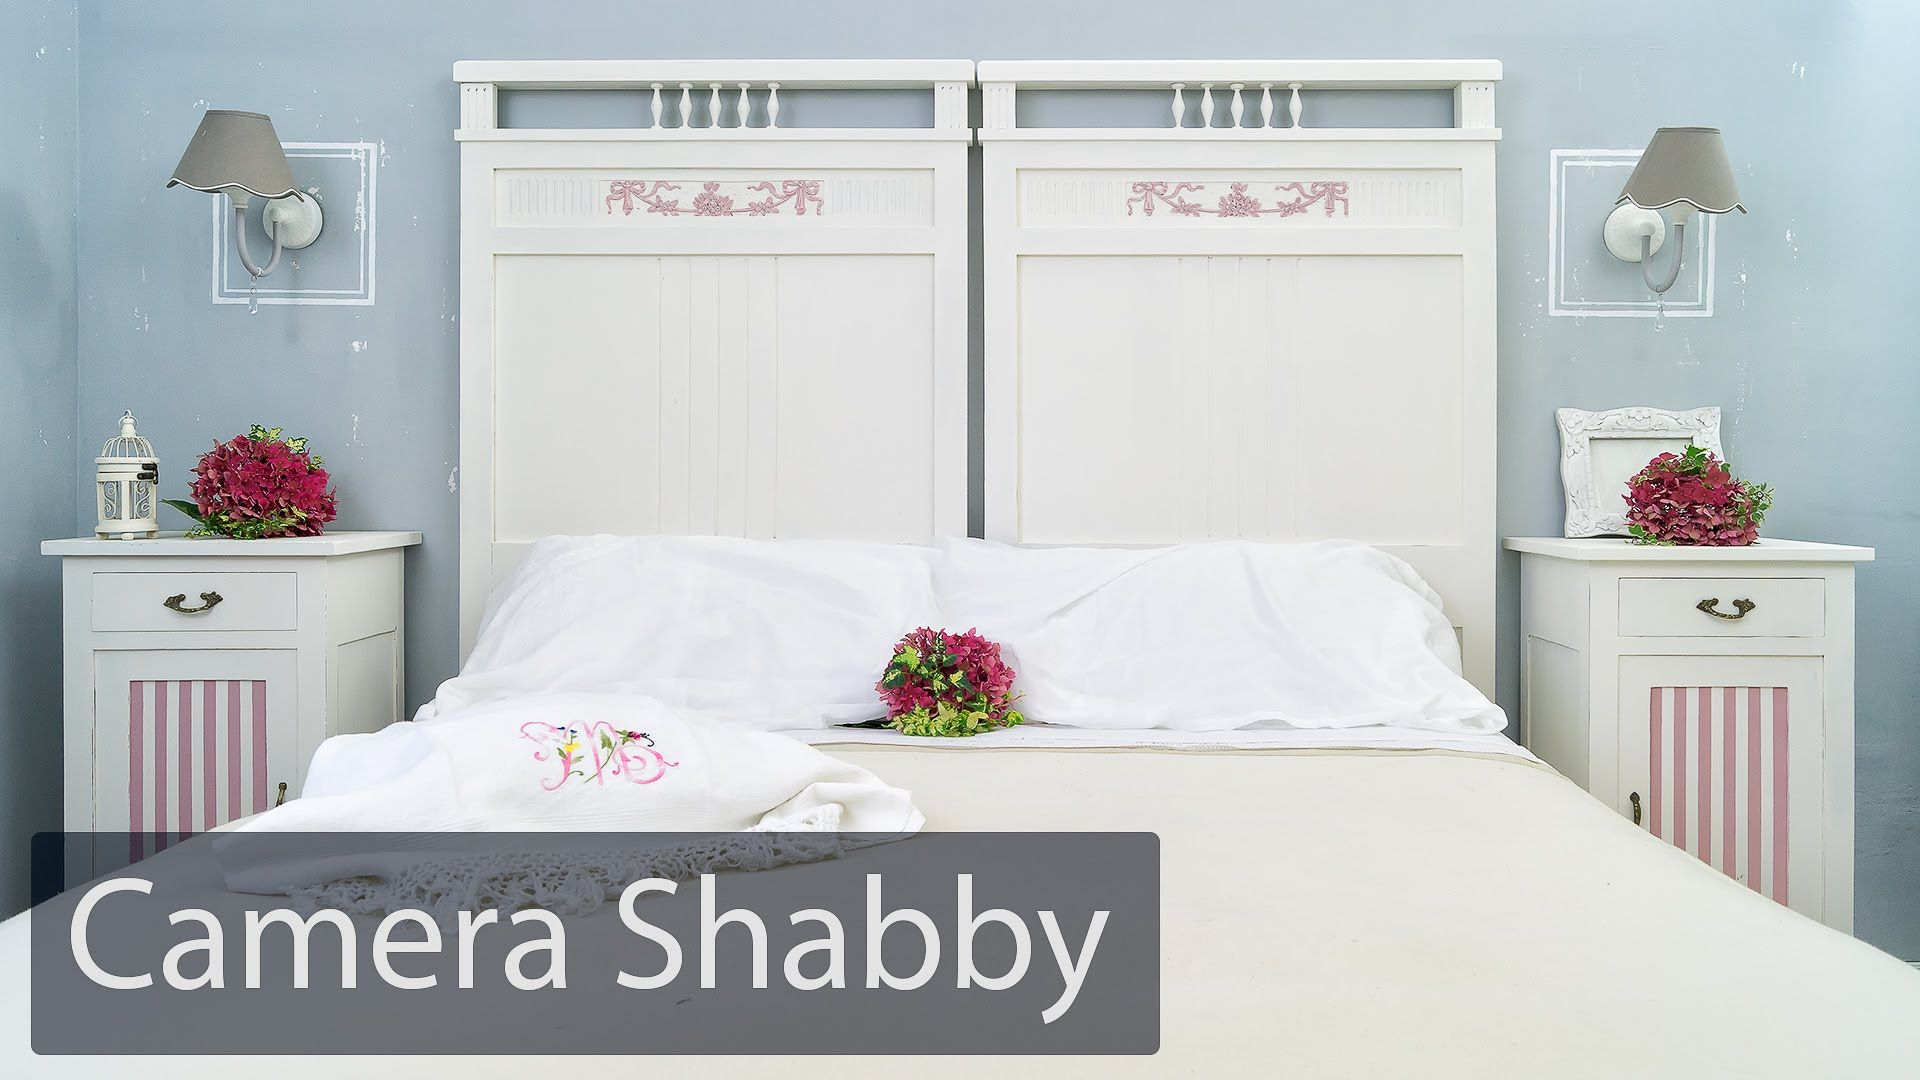 17 Best images about Creazioni Shabby Chic Video on Pinterest ...